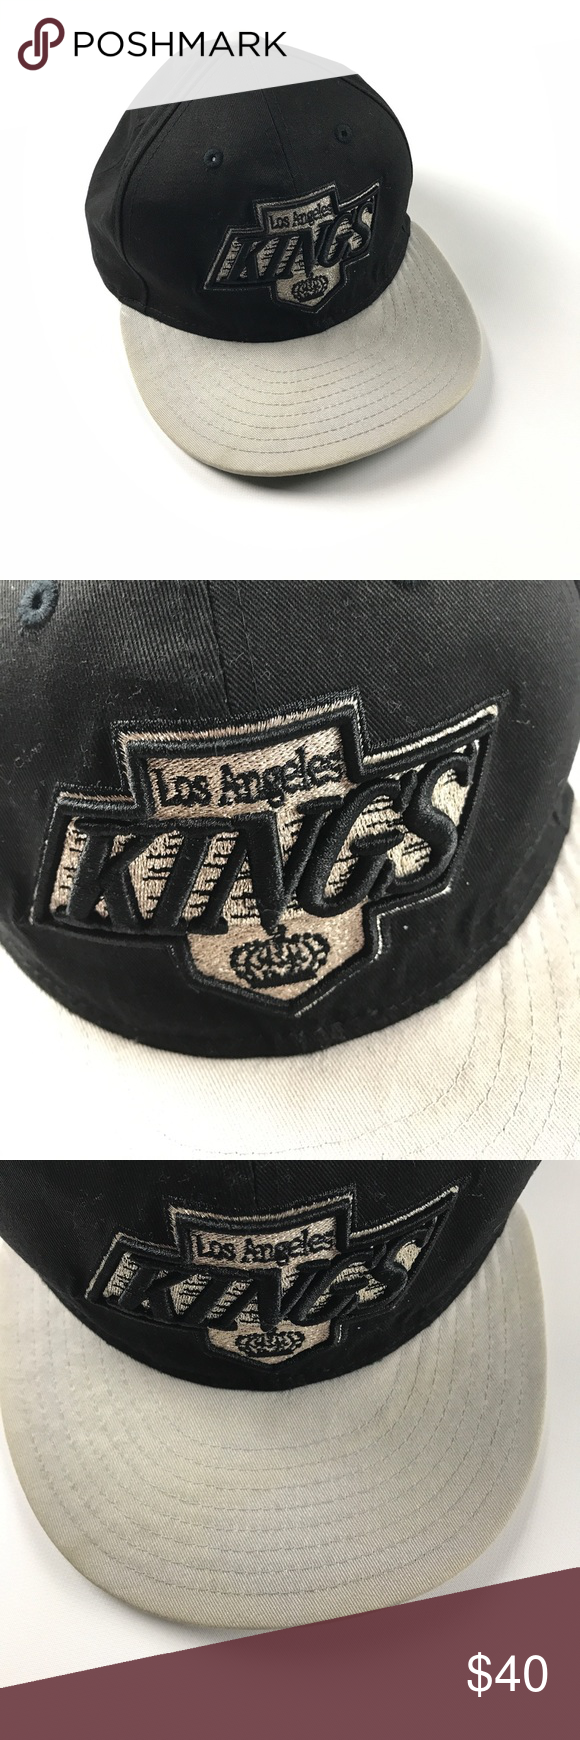 Vintage New Era LA Kings Retro Snapback Hat Shows some wear on the brim New Era Accessories Hats